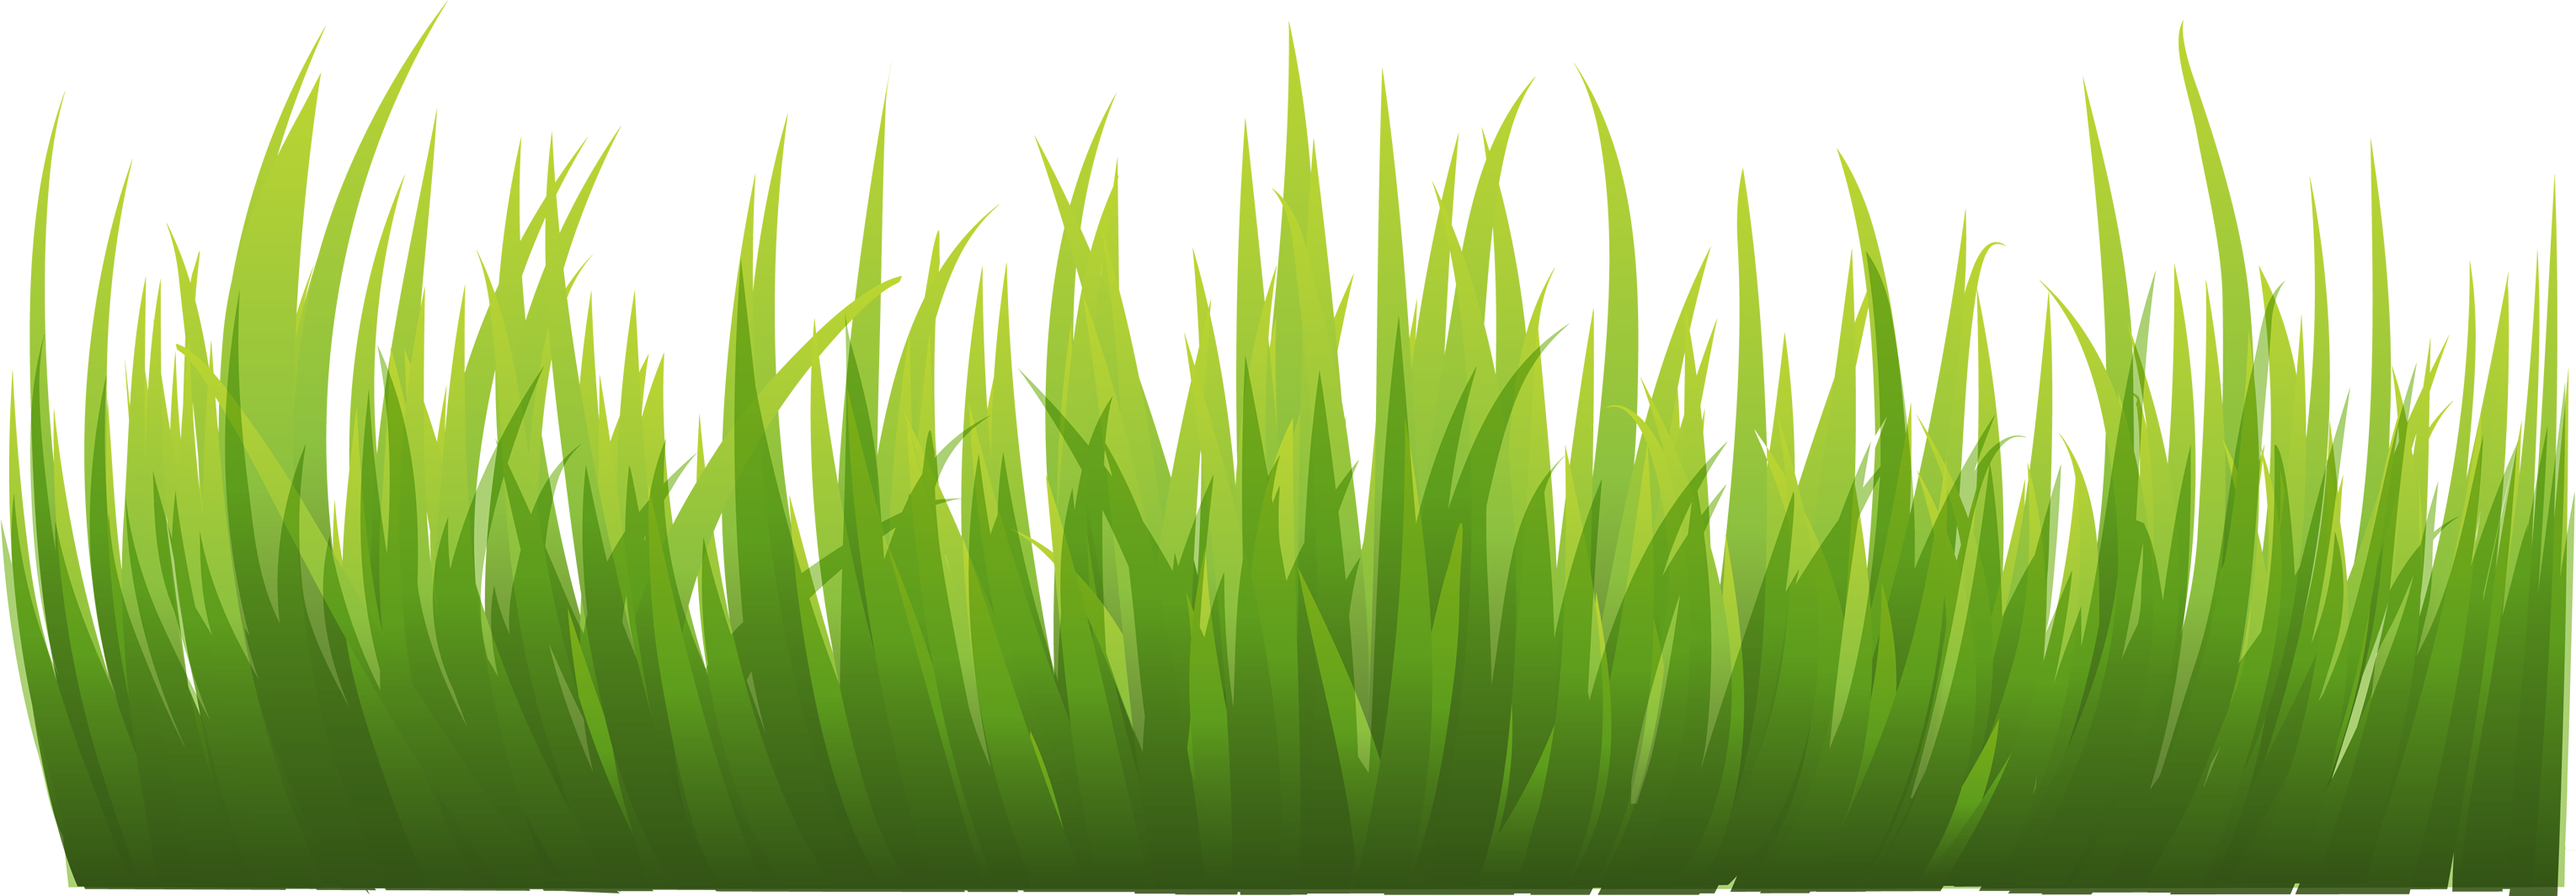 Grass clipart png format. Images pictures image green